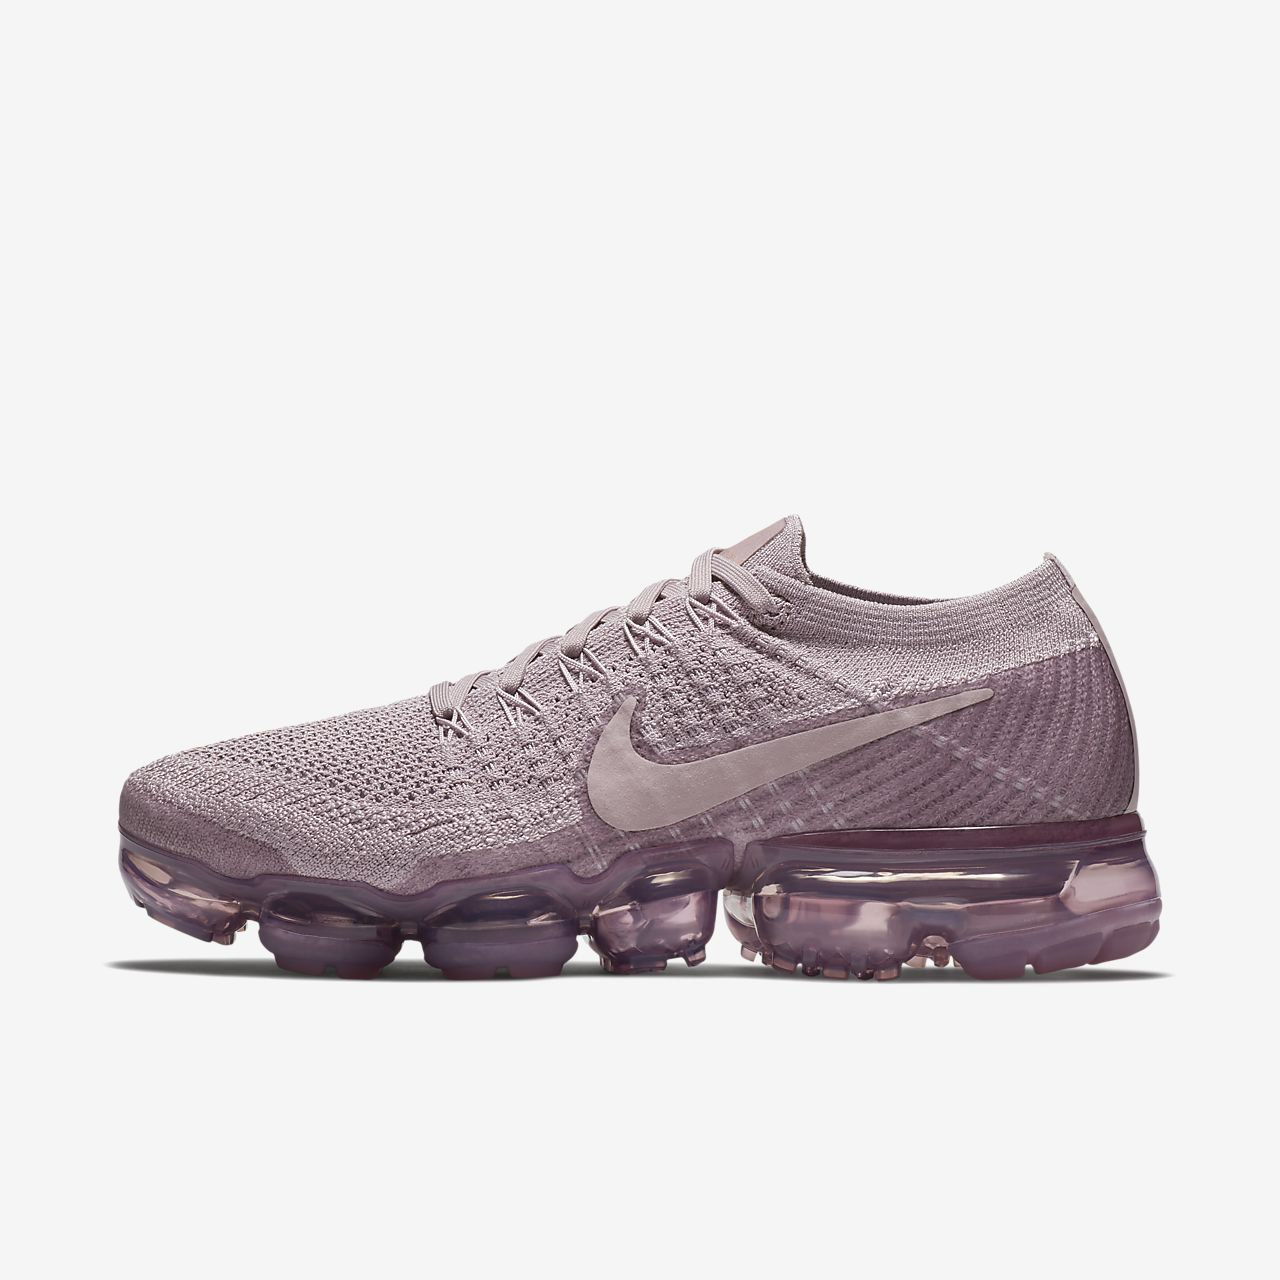 chaussures nike vapormax femme. Black Bedroom Furniture Sets. Home Design Ideas